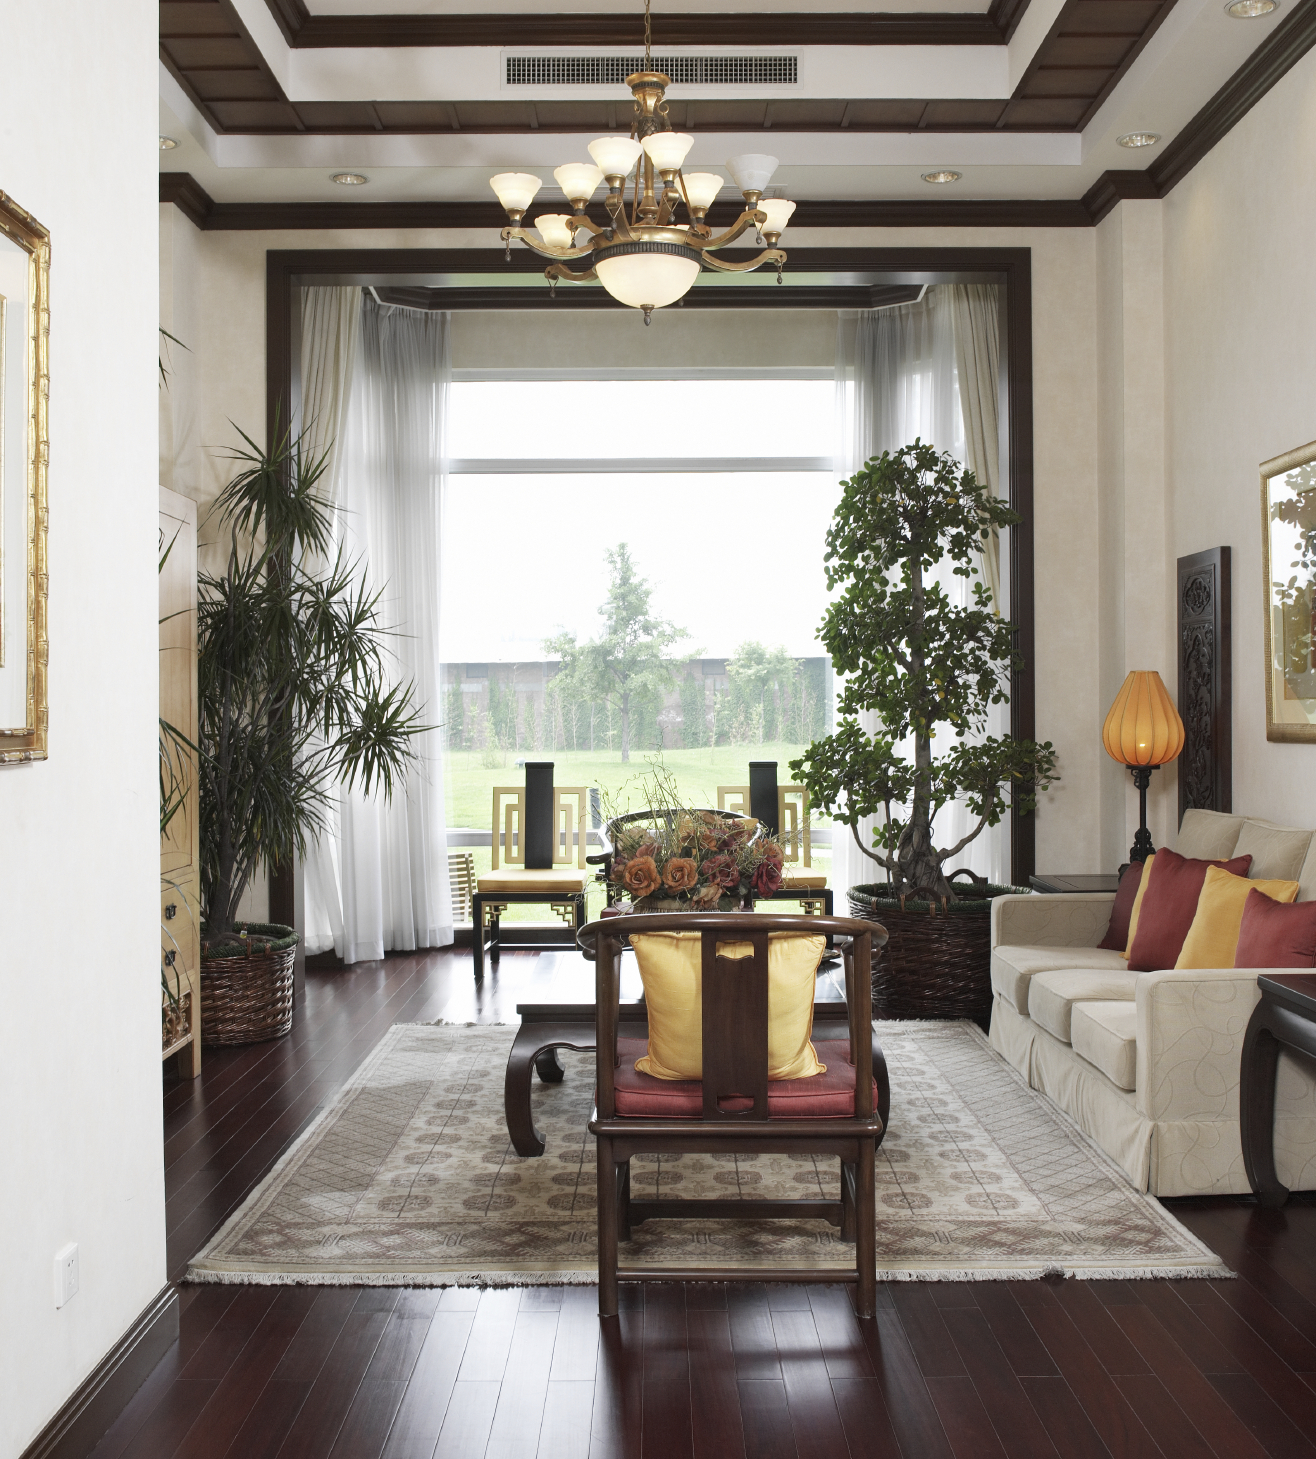 Rich red in the hardwood floor is brought out in the red chair cushions and red throw pillows. Just visible is a light wood entertainment center. Tray ceiling is white with brown crown molding.